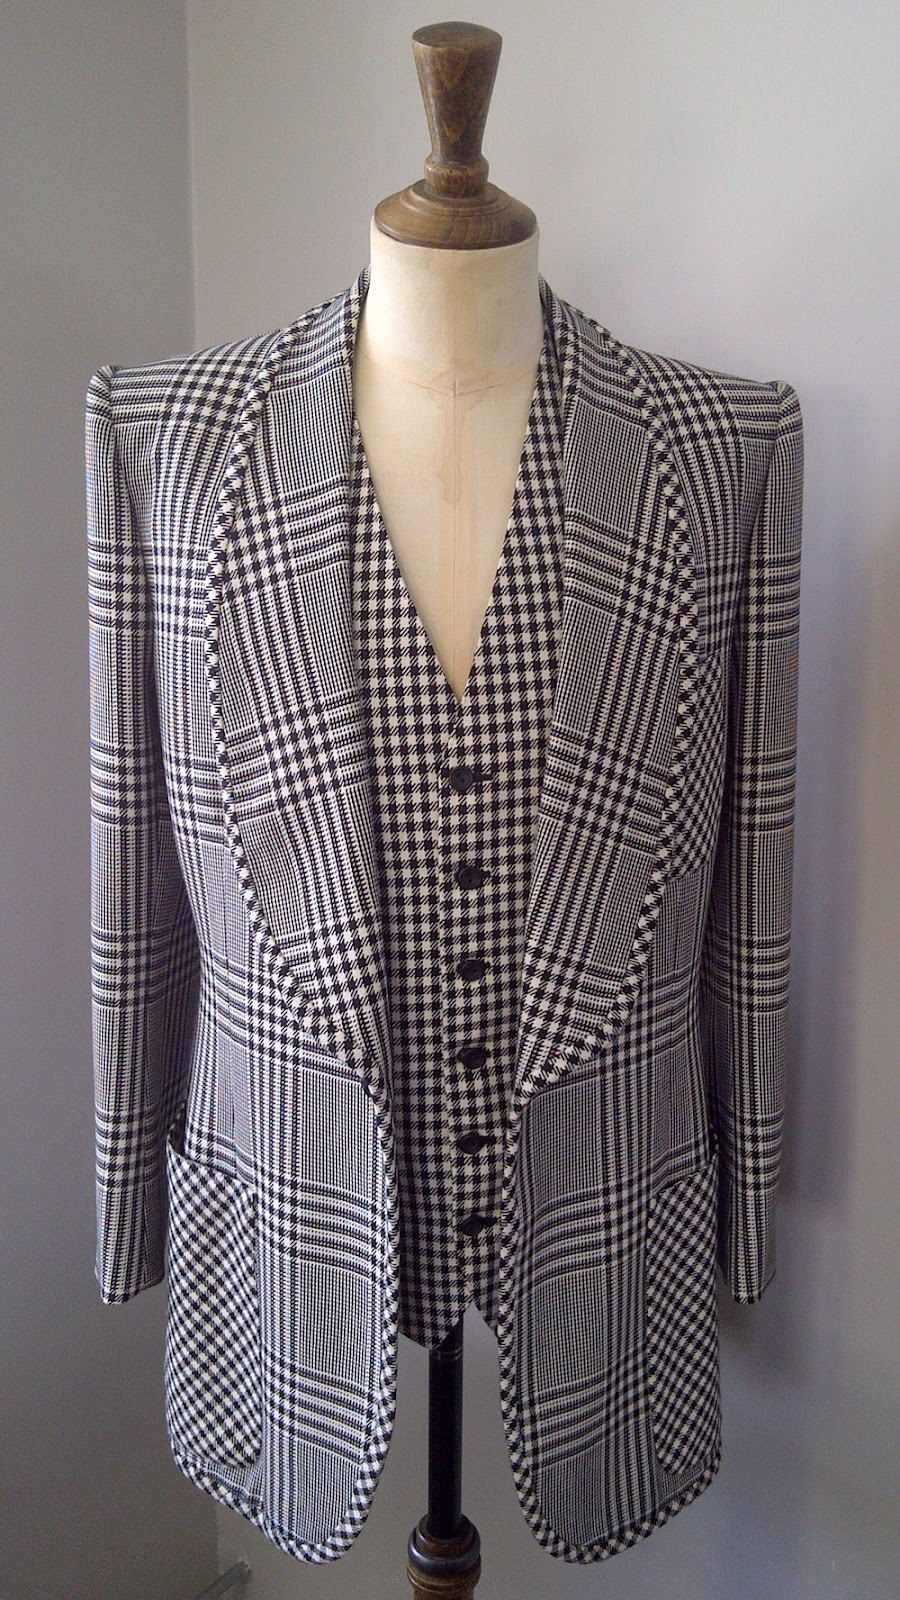 This is a Tommy Nutter suit too,and its clearly a Glen check (Prince of Wales) and a houndstooth (that looks like a gingham) combo. Not actually exactly what after, but same look. Graphic, monochrome check. Roger? Check. -